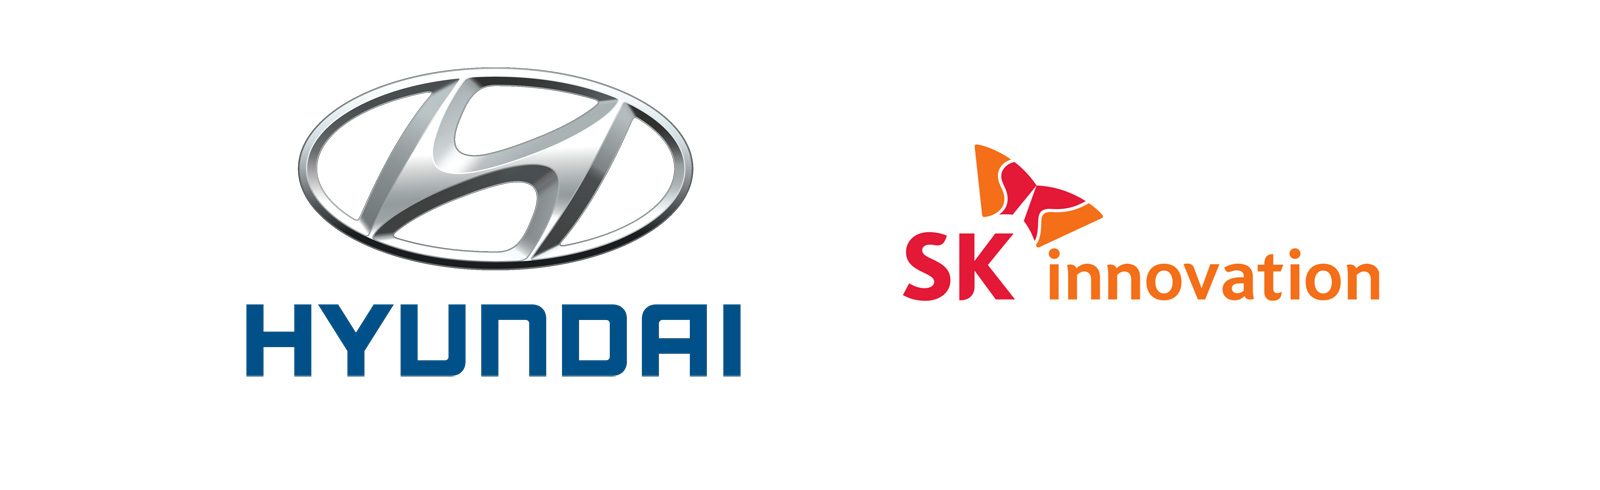 Hyundai and SK Innovation agree to cooperate in the field of EV batteries including leasing